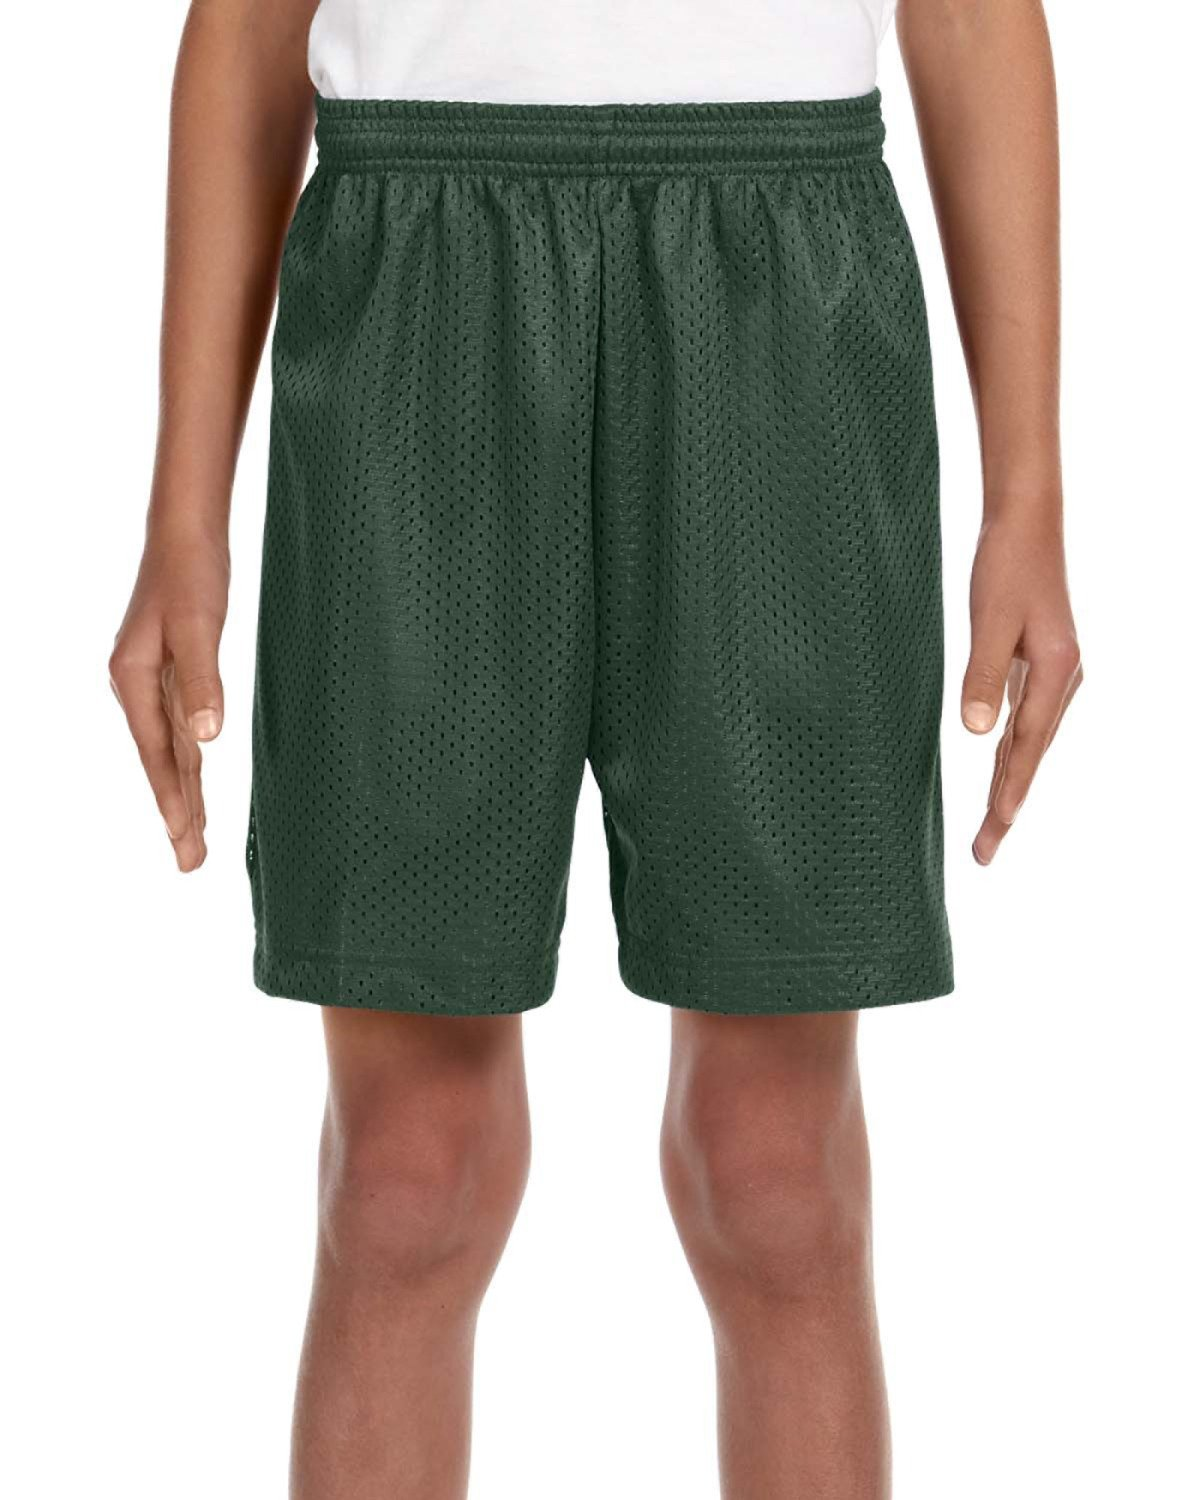 A4 Youth Six Inch Inseam Mesh Short FOREST GREEN